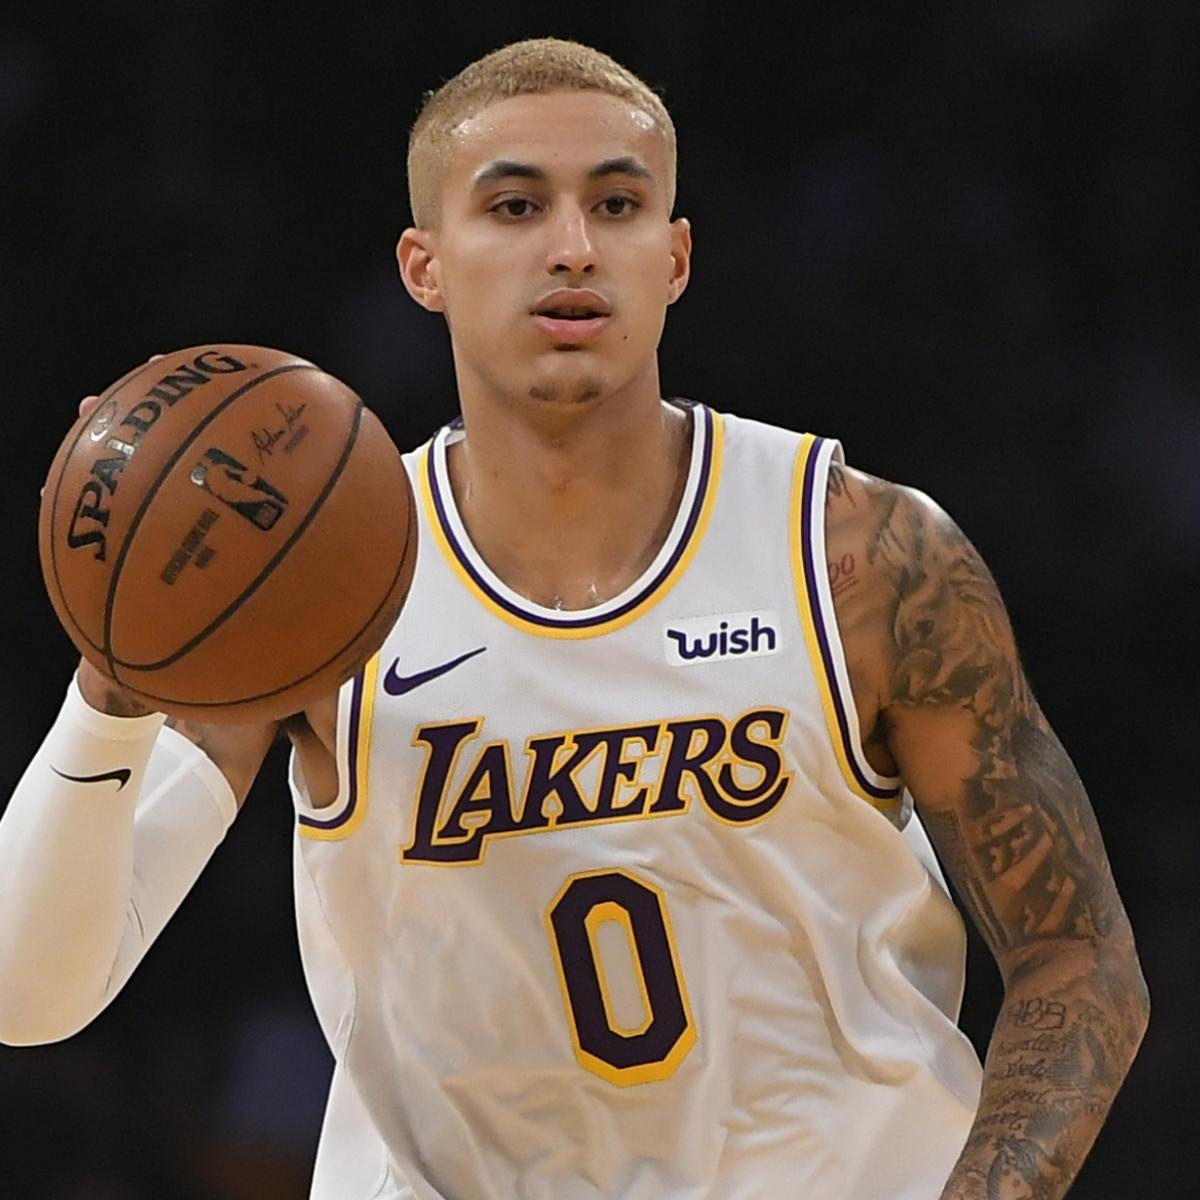 https://bleacherreport.com/articles/2869568-lakers-trade-rumors-kyle-kuzma-valued-as-part-of-core-despite-league-interest